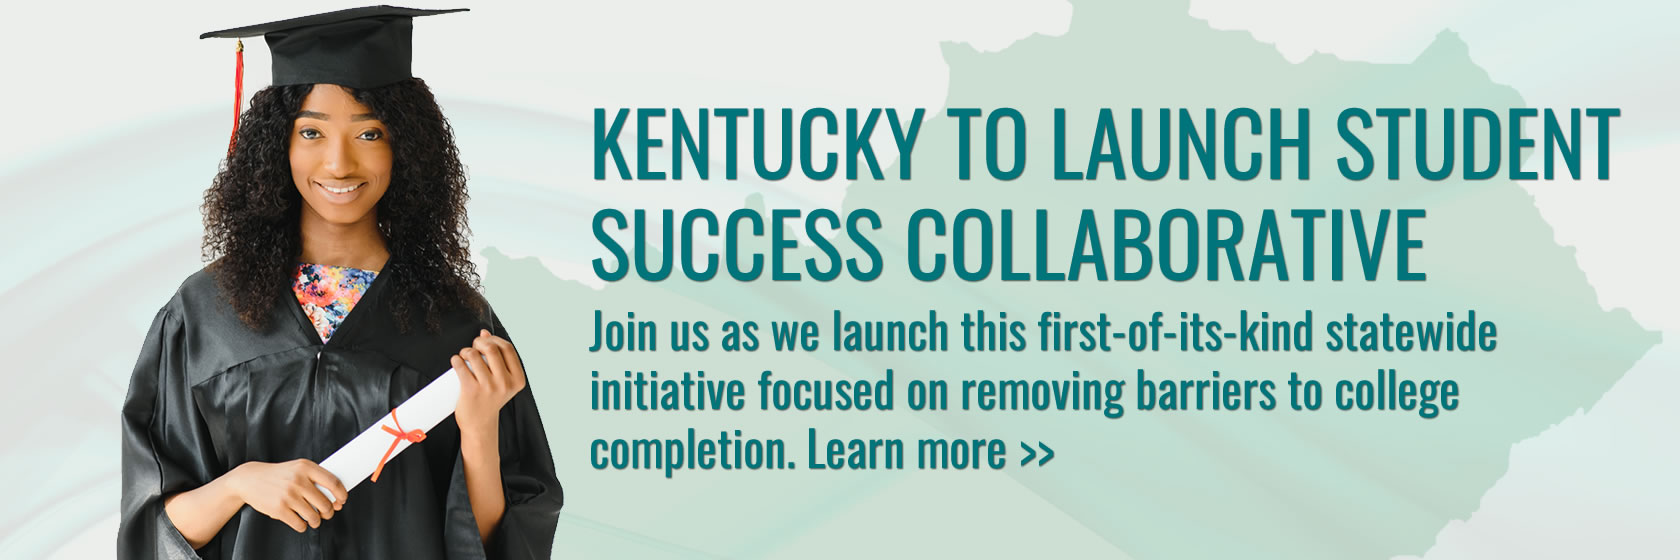 Join us for the launch of Kentucky's Student Success Collaborative